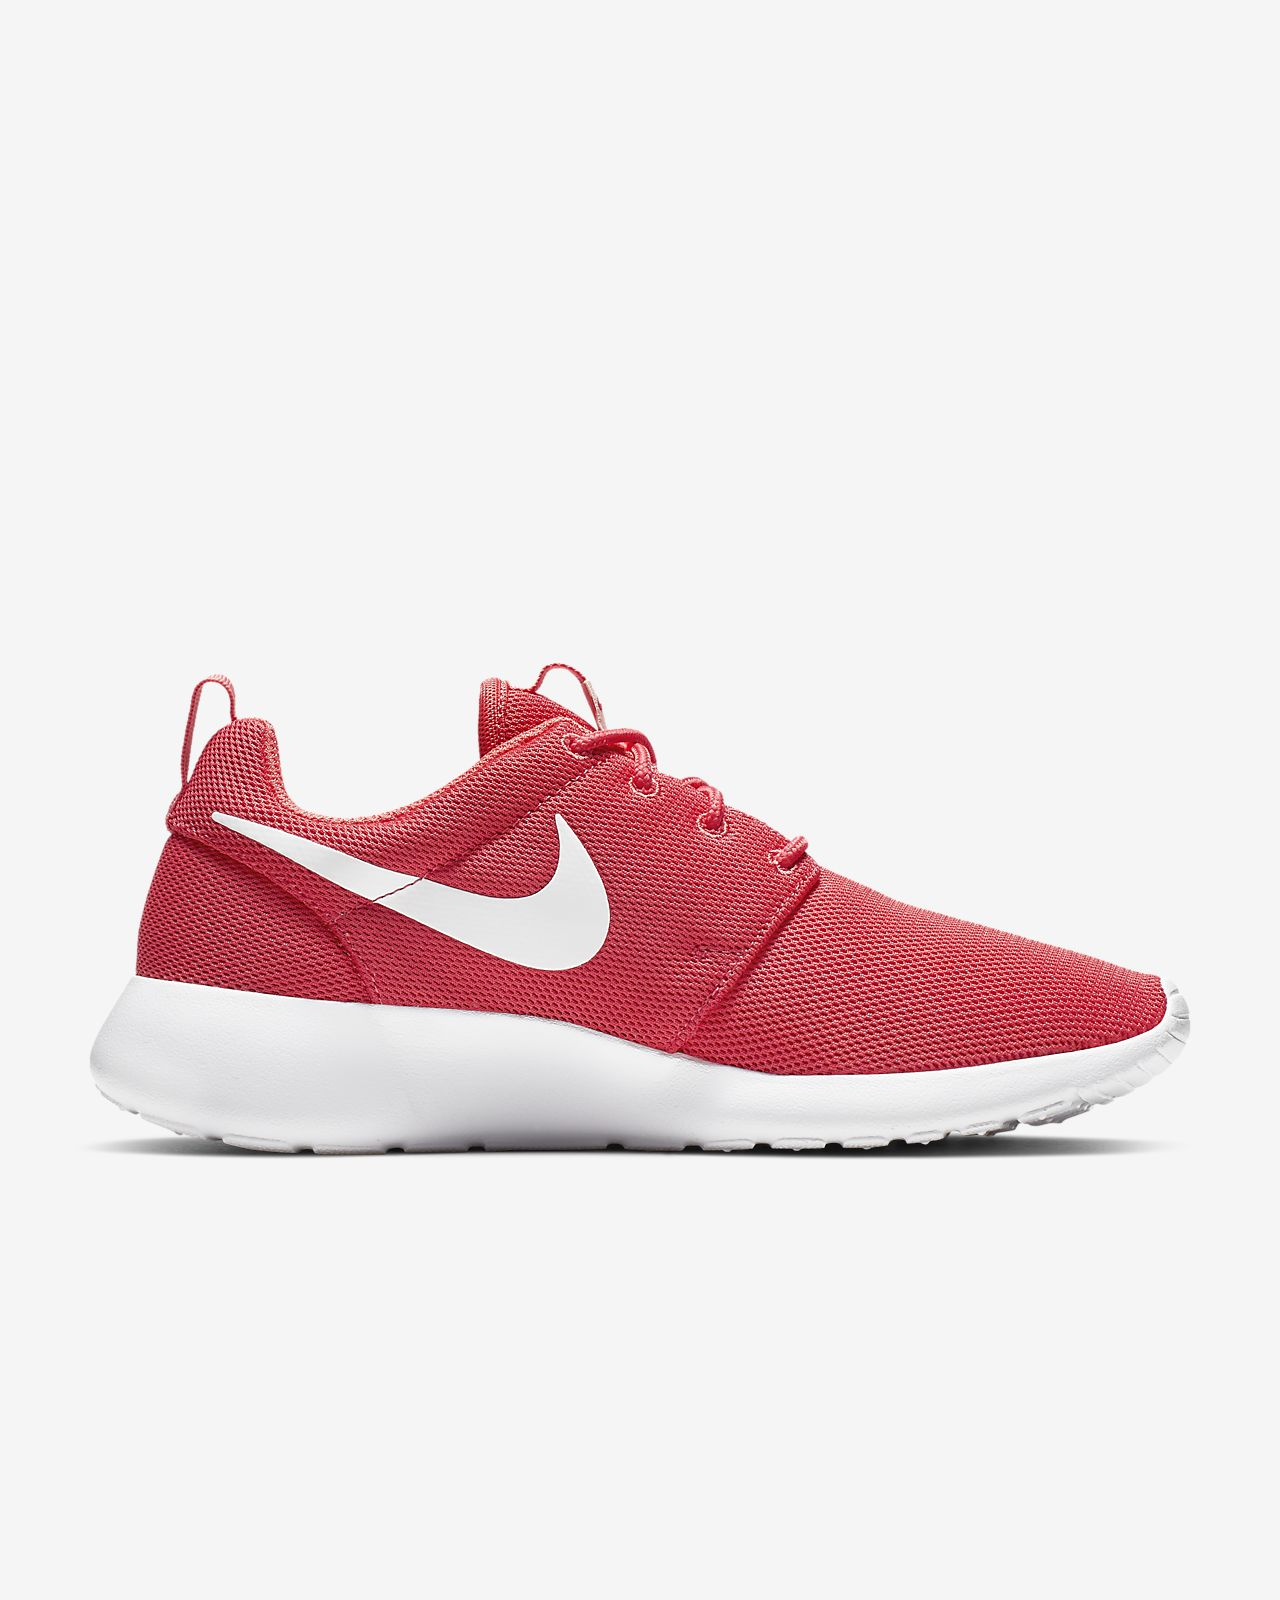 2299910400dad Nike Roshe One Women s Shoe. Nike.com